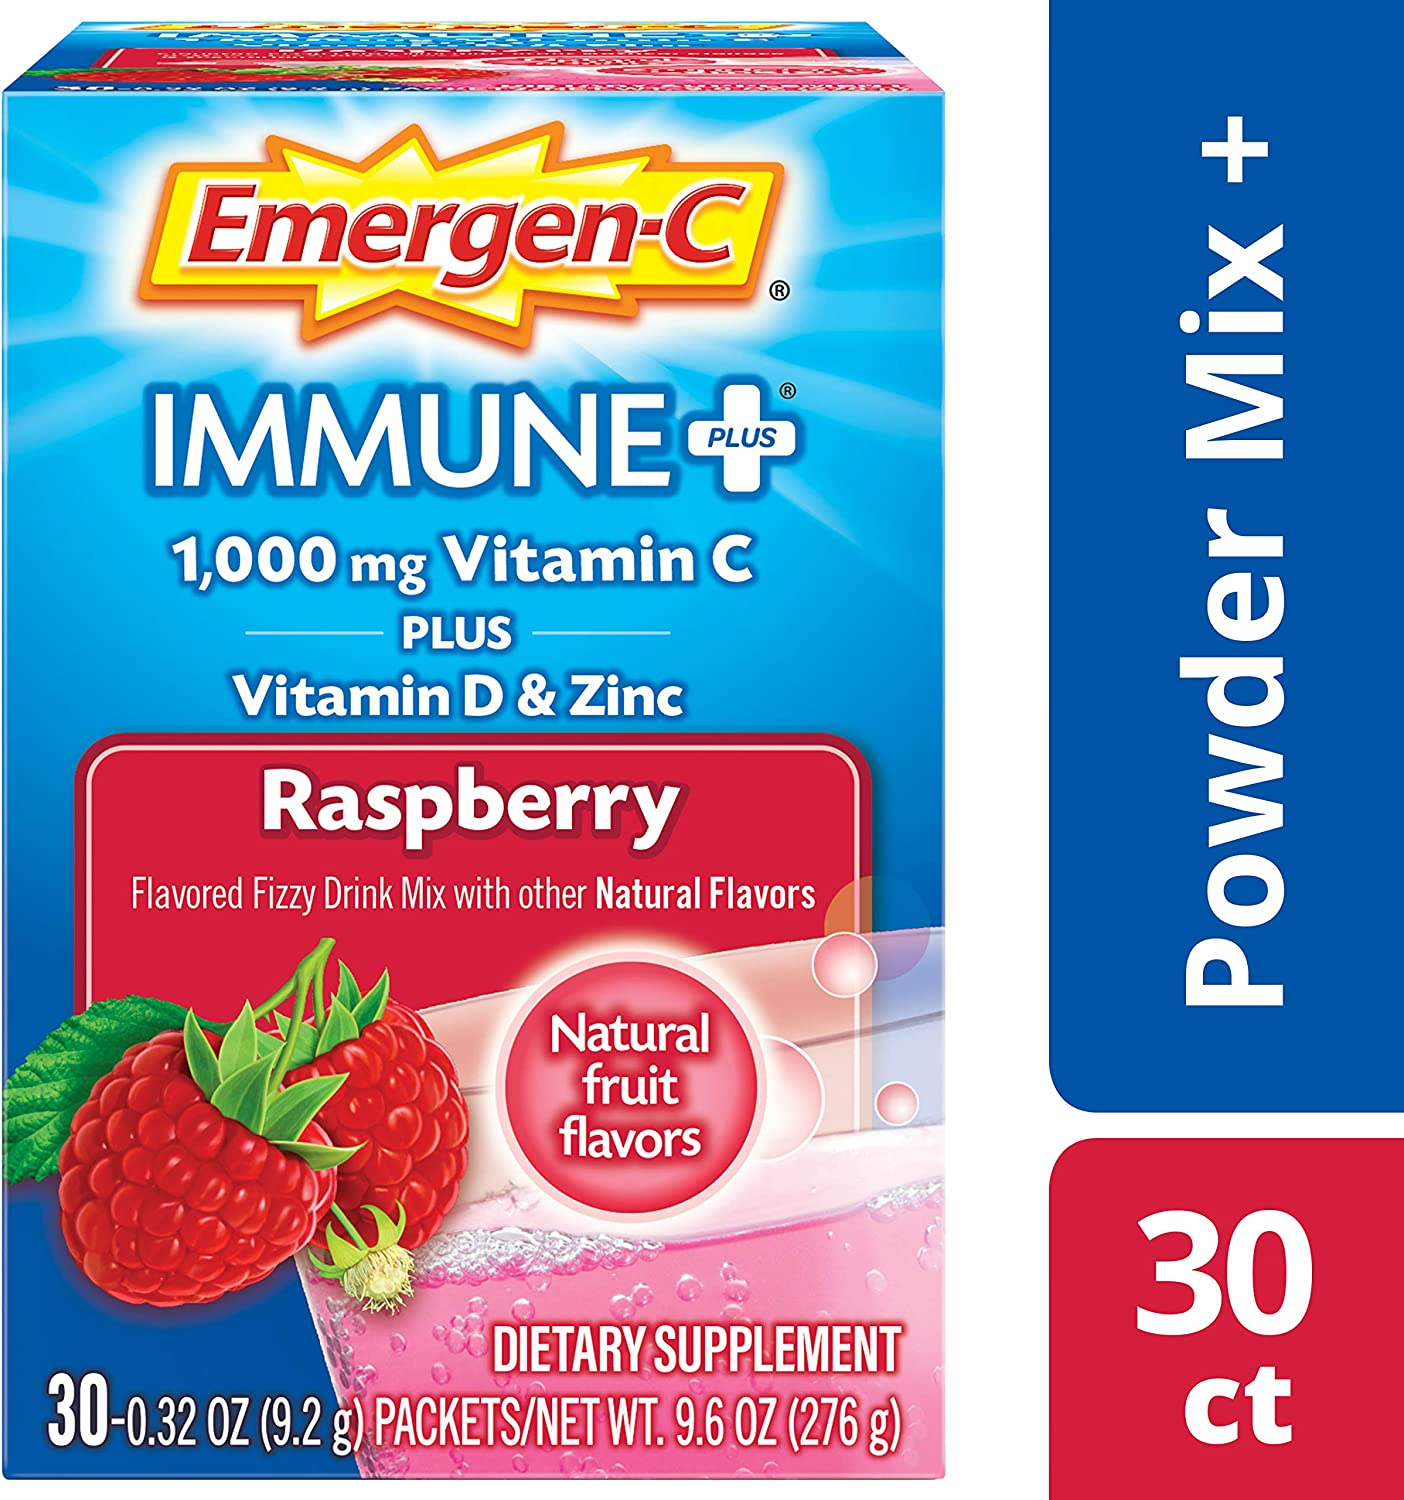 Emergen-C Immune+ Vitamin C 1000mg Powder, Plus Vitamin D And Zinc (30 Count, Rapsberry Flavor, 1 Month Supply), Immune Support Dietary Supplement Fizzy Drink Mix, Antioxidants & Electrolytes